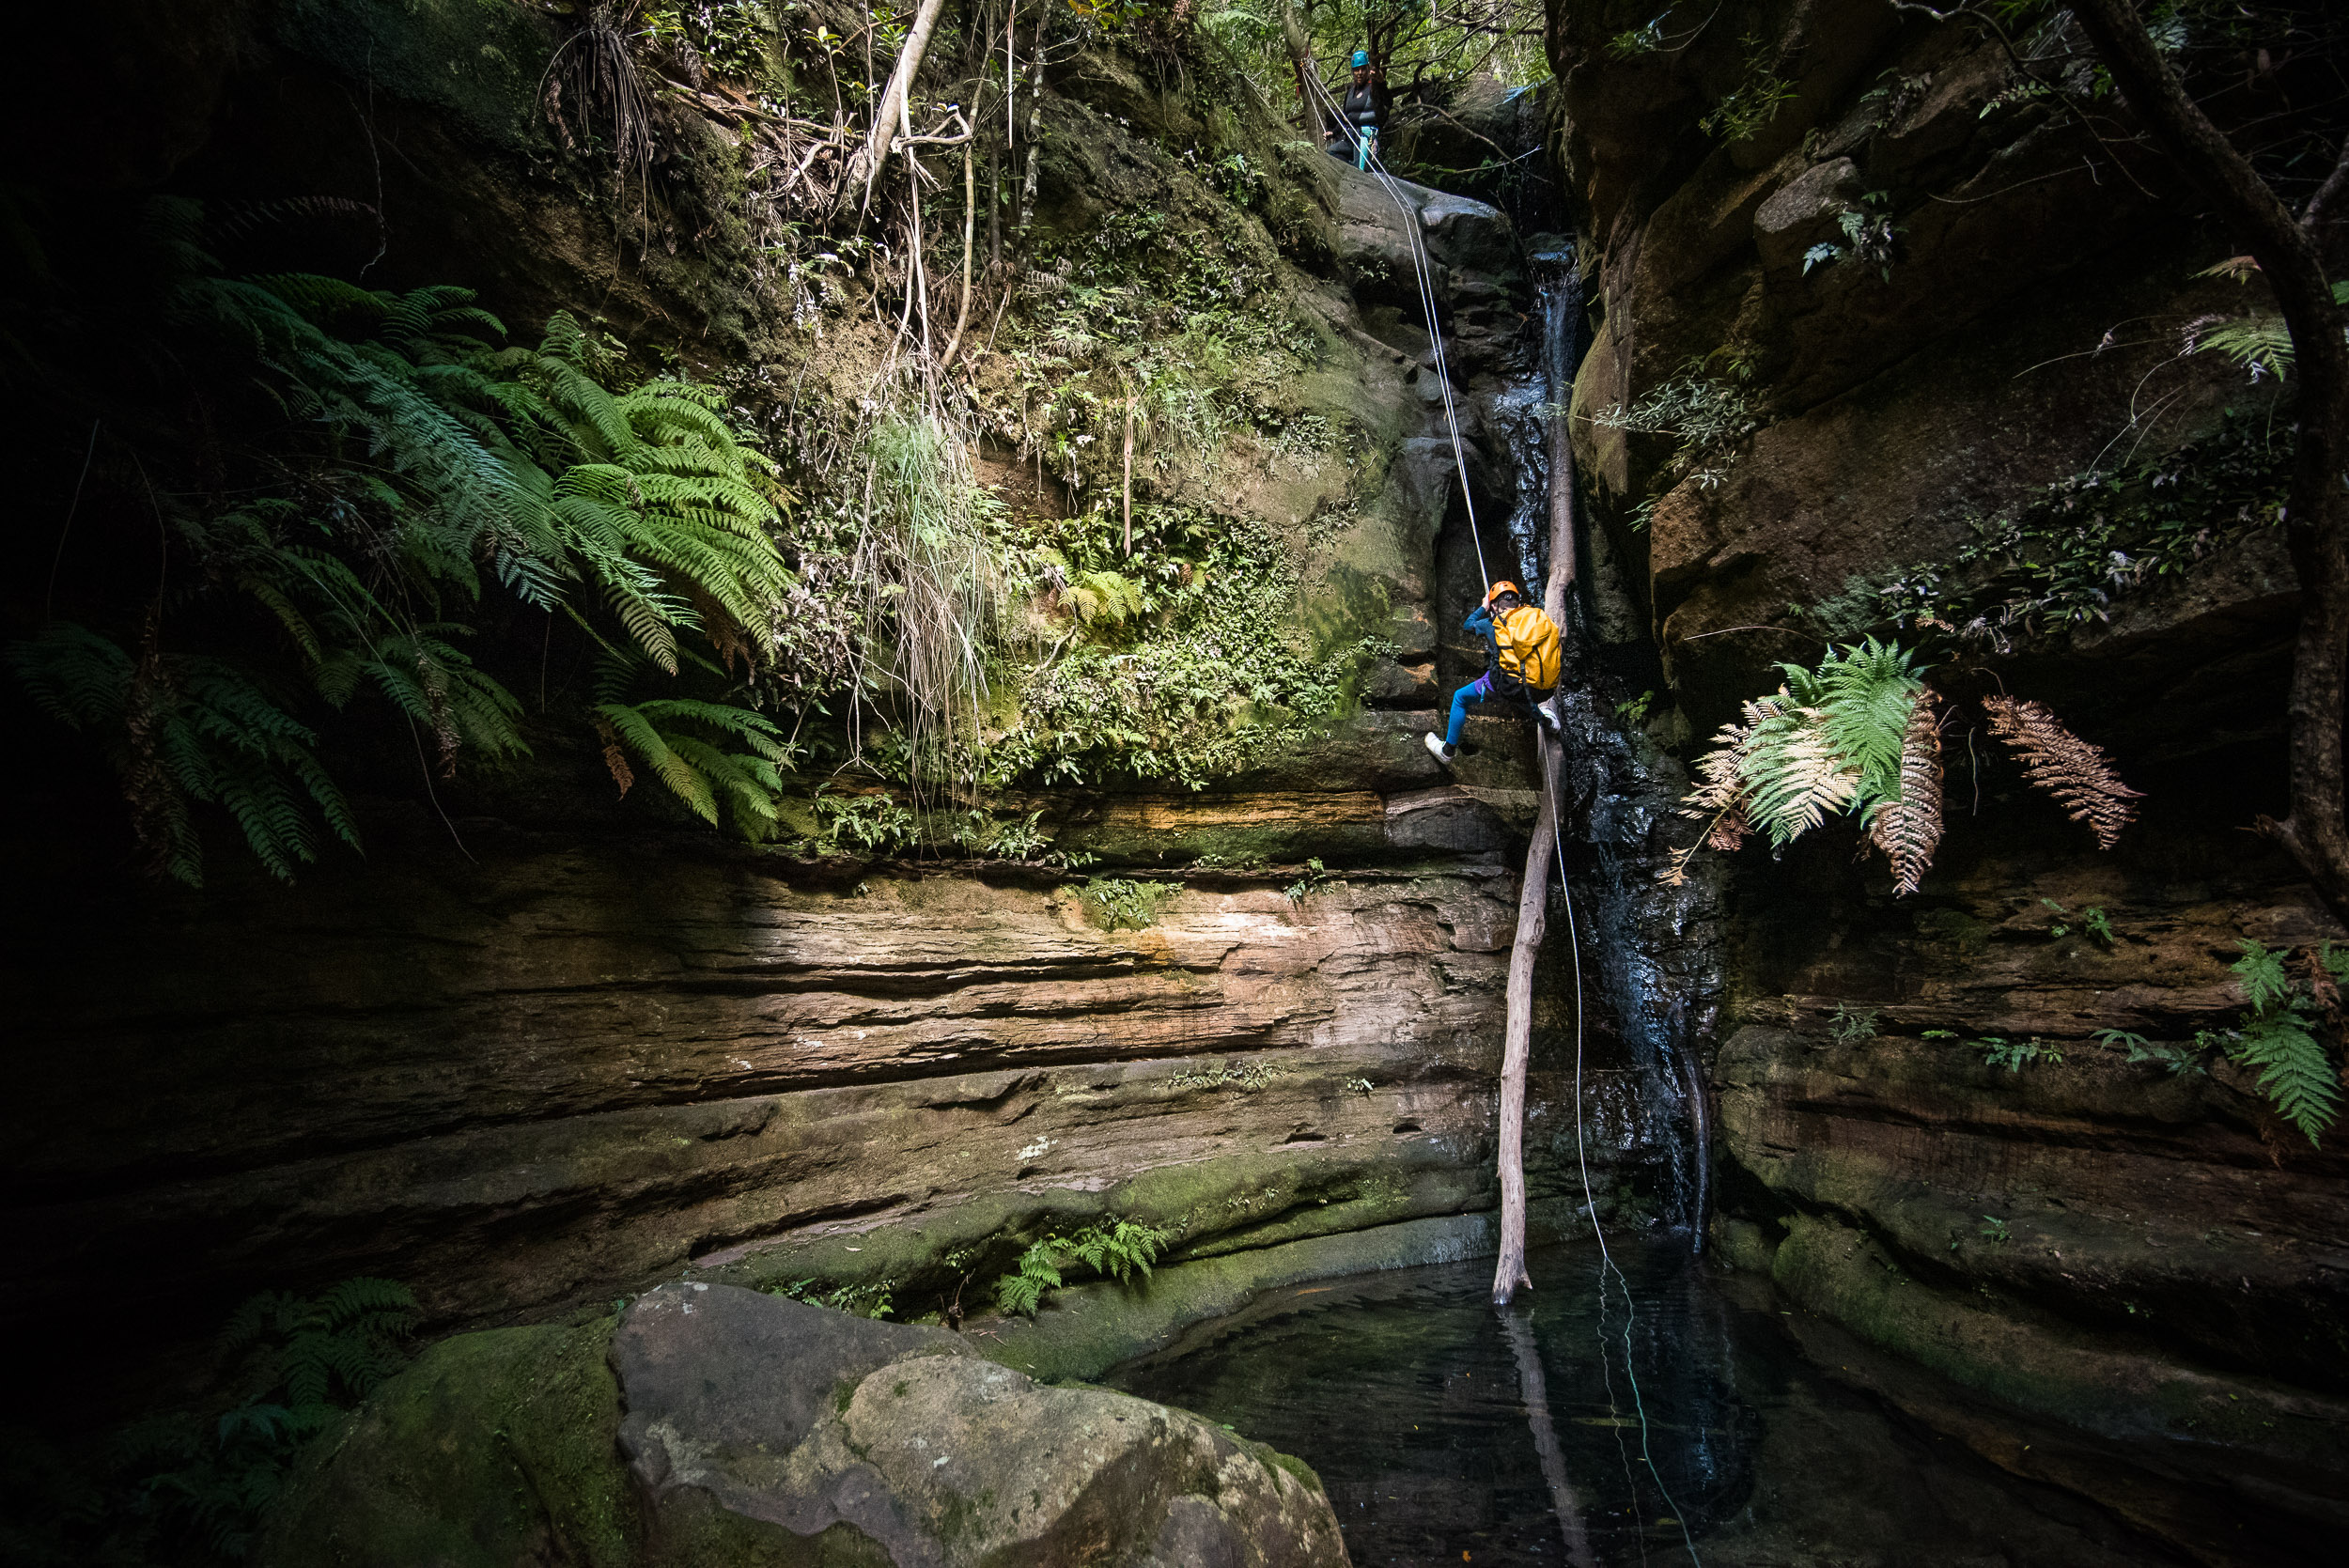 Thomas, Rob, Hayley, Arthur and some of his buddies, did the nearby Juggler Canyon, Medlow Bath.